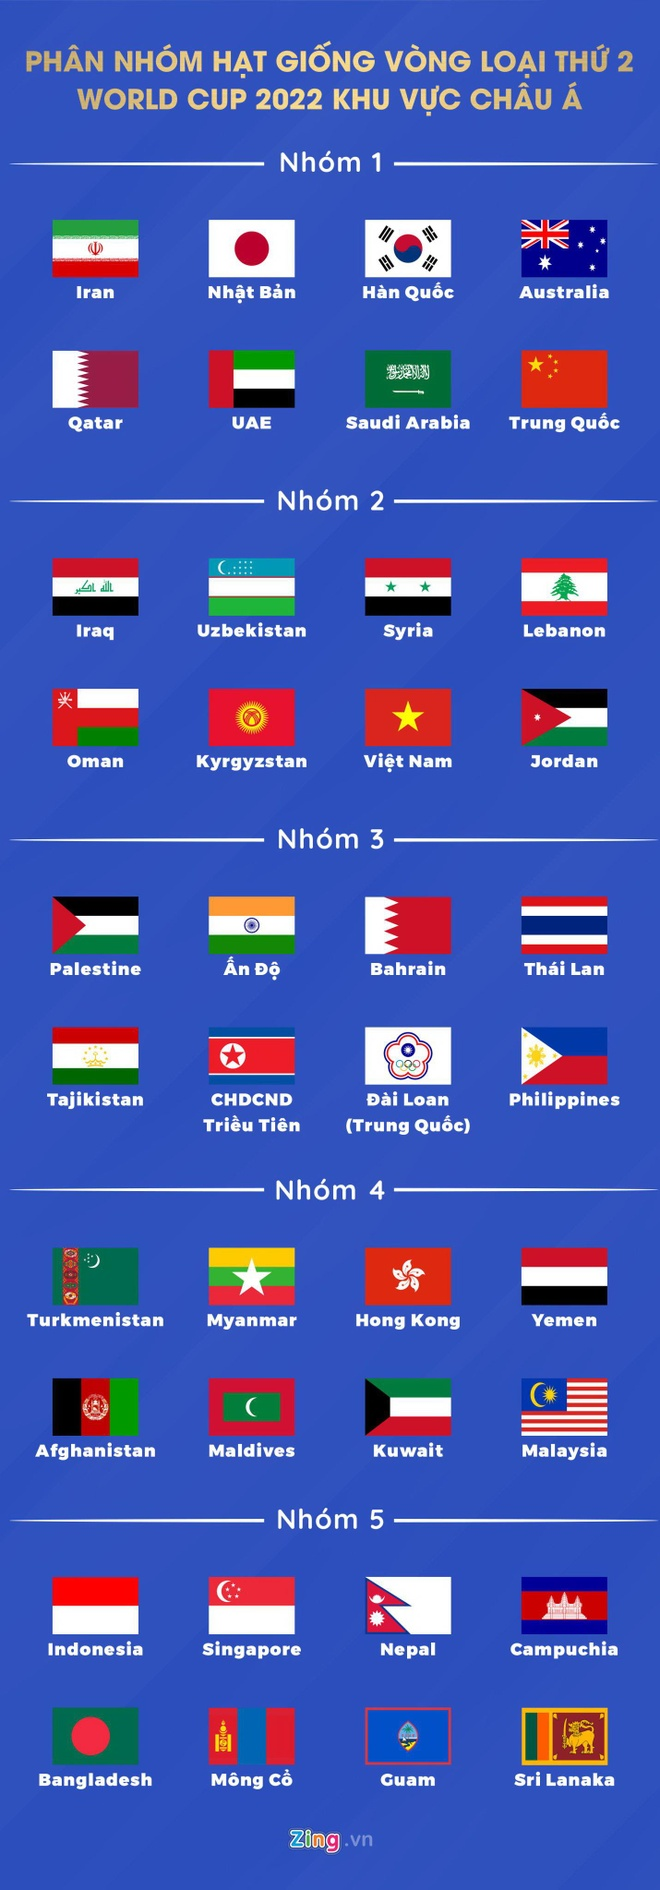 Viet Nam boc tham vong loai World Cup 2022 anh 2